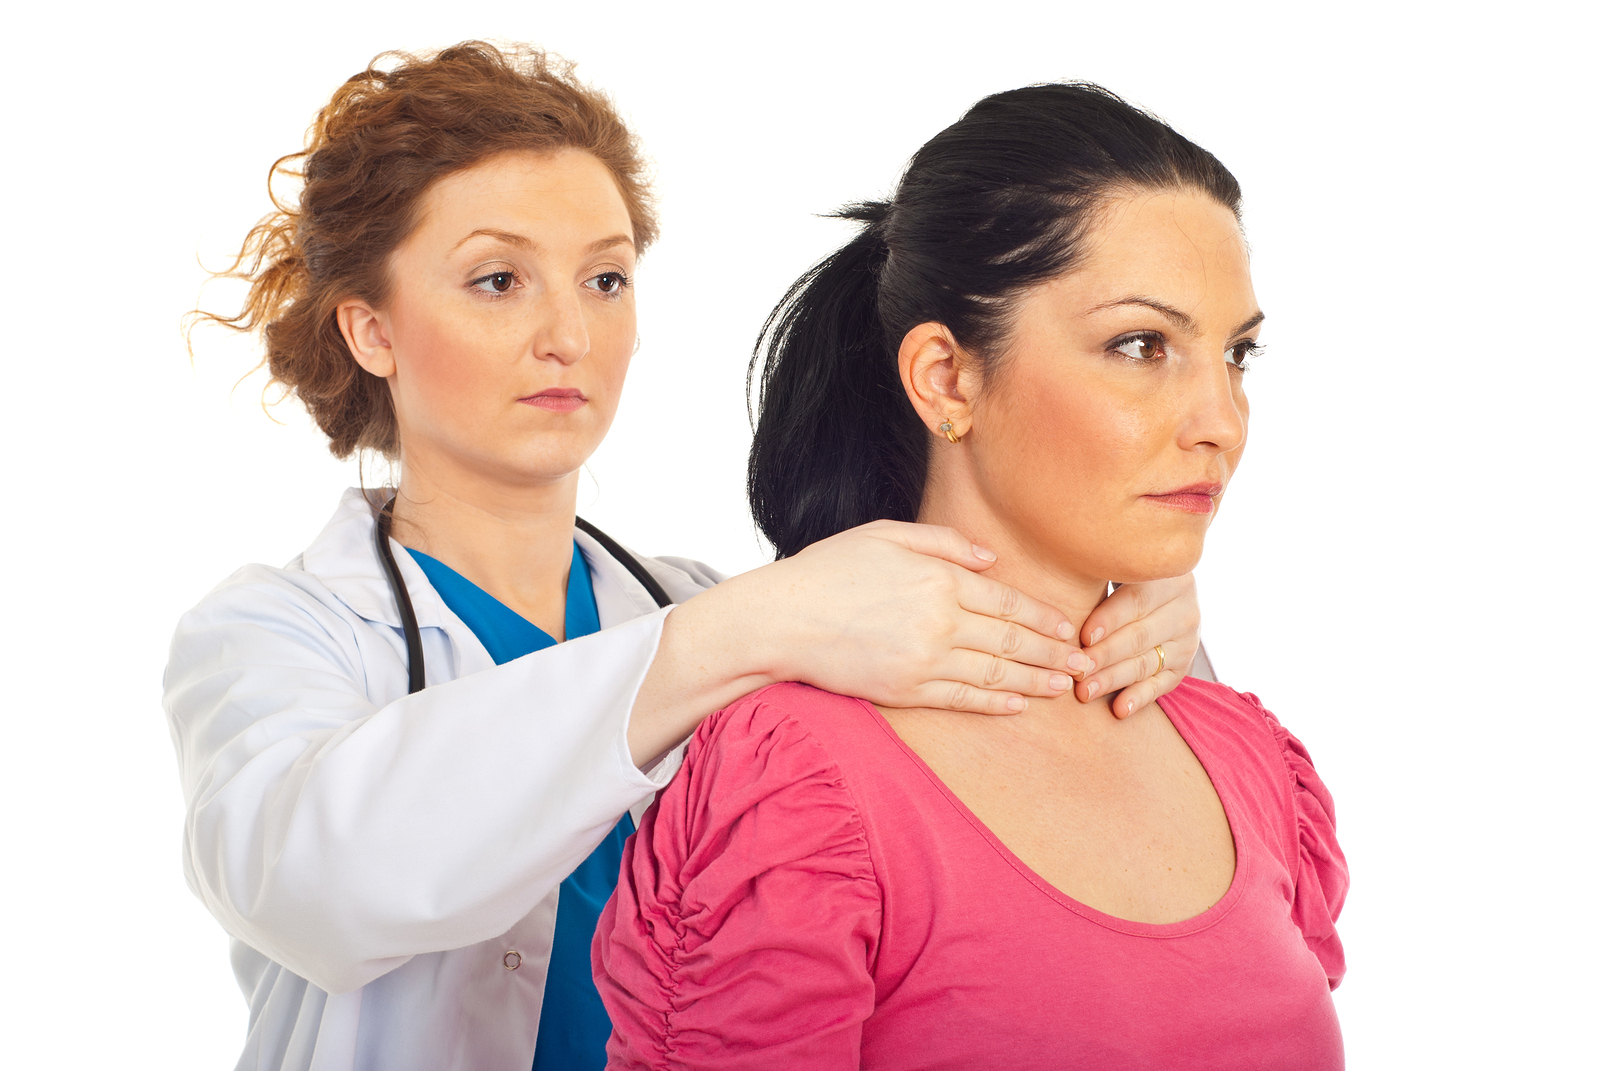 Causes of Hypothyroidism - Signs and Symptoms